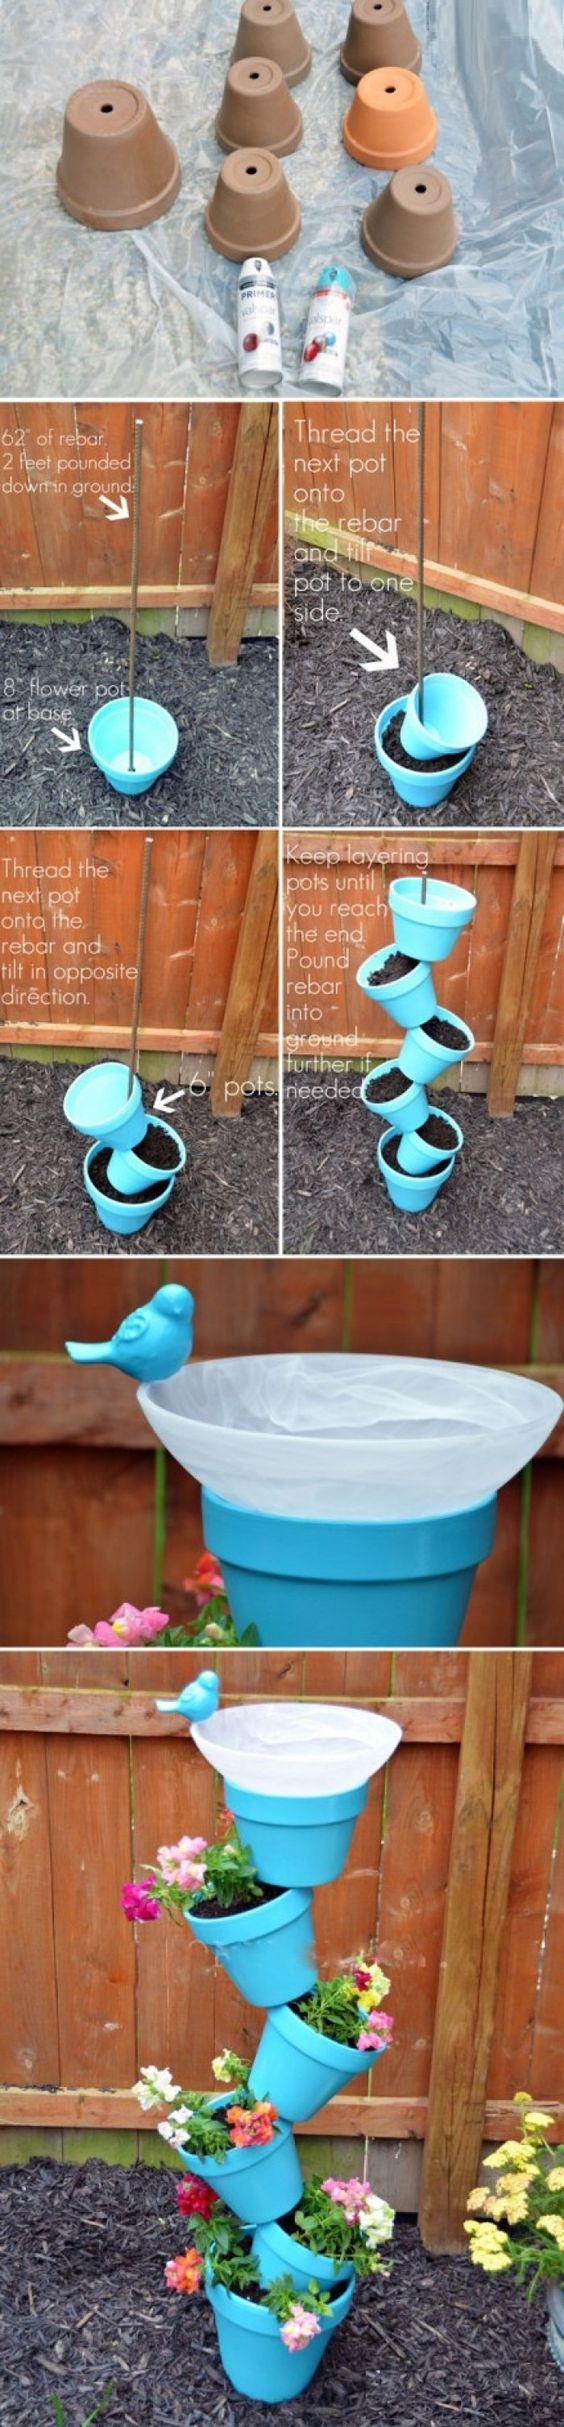 Garten, Basteln And Photos On Pinterest 10 Ideen Tolle Spasige Diy Gartenschaukel